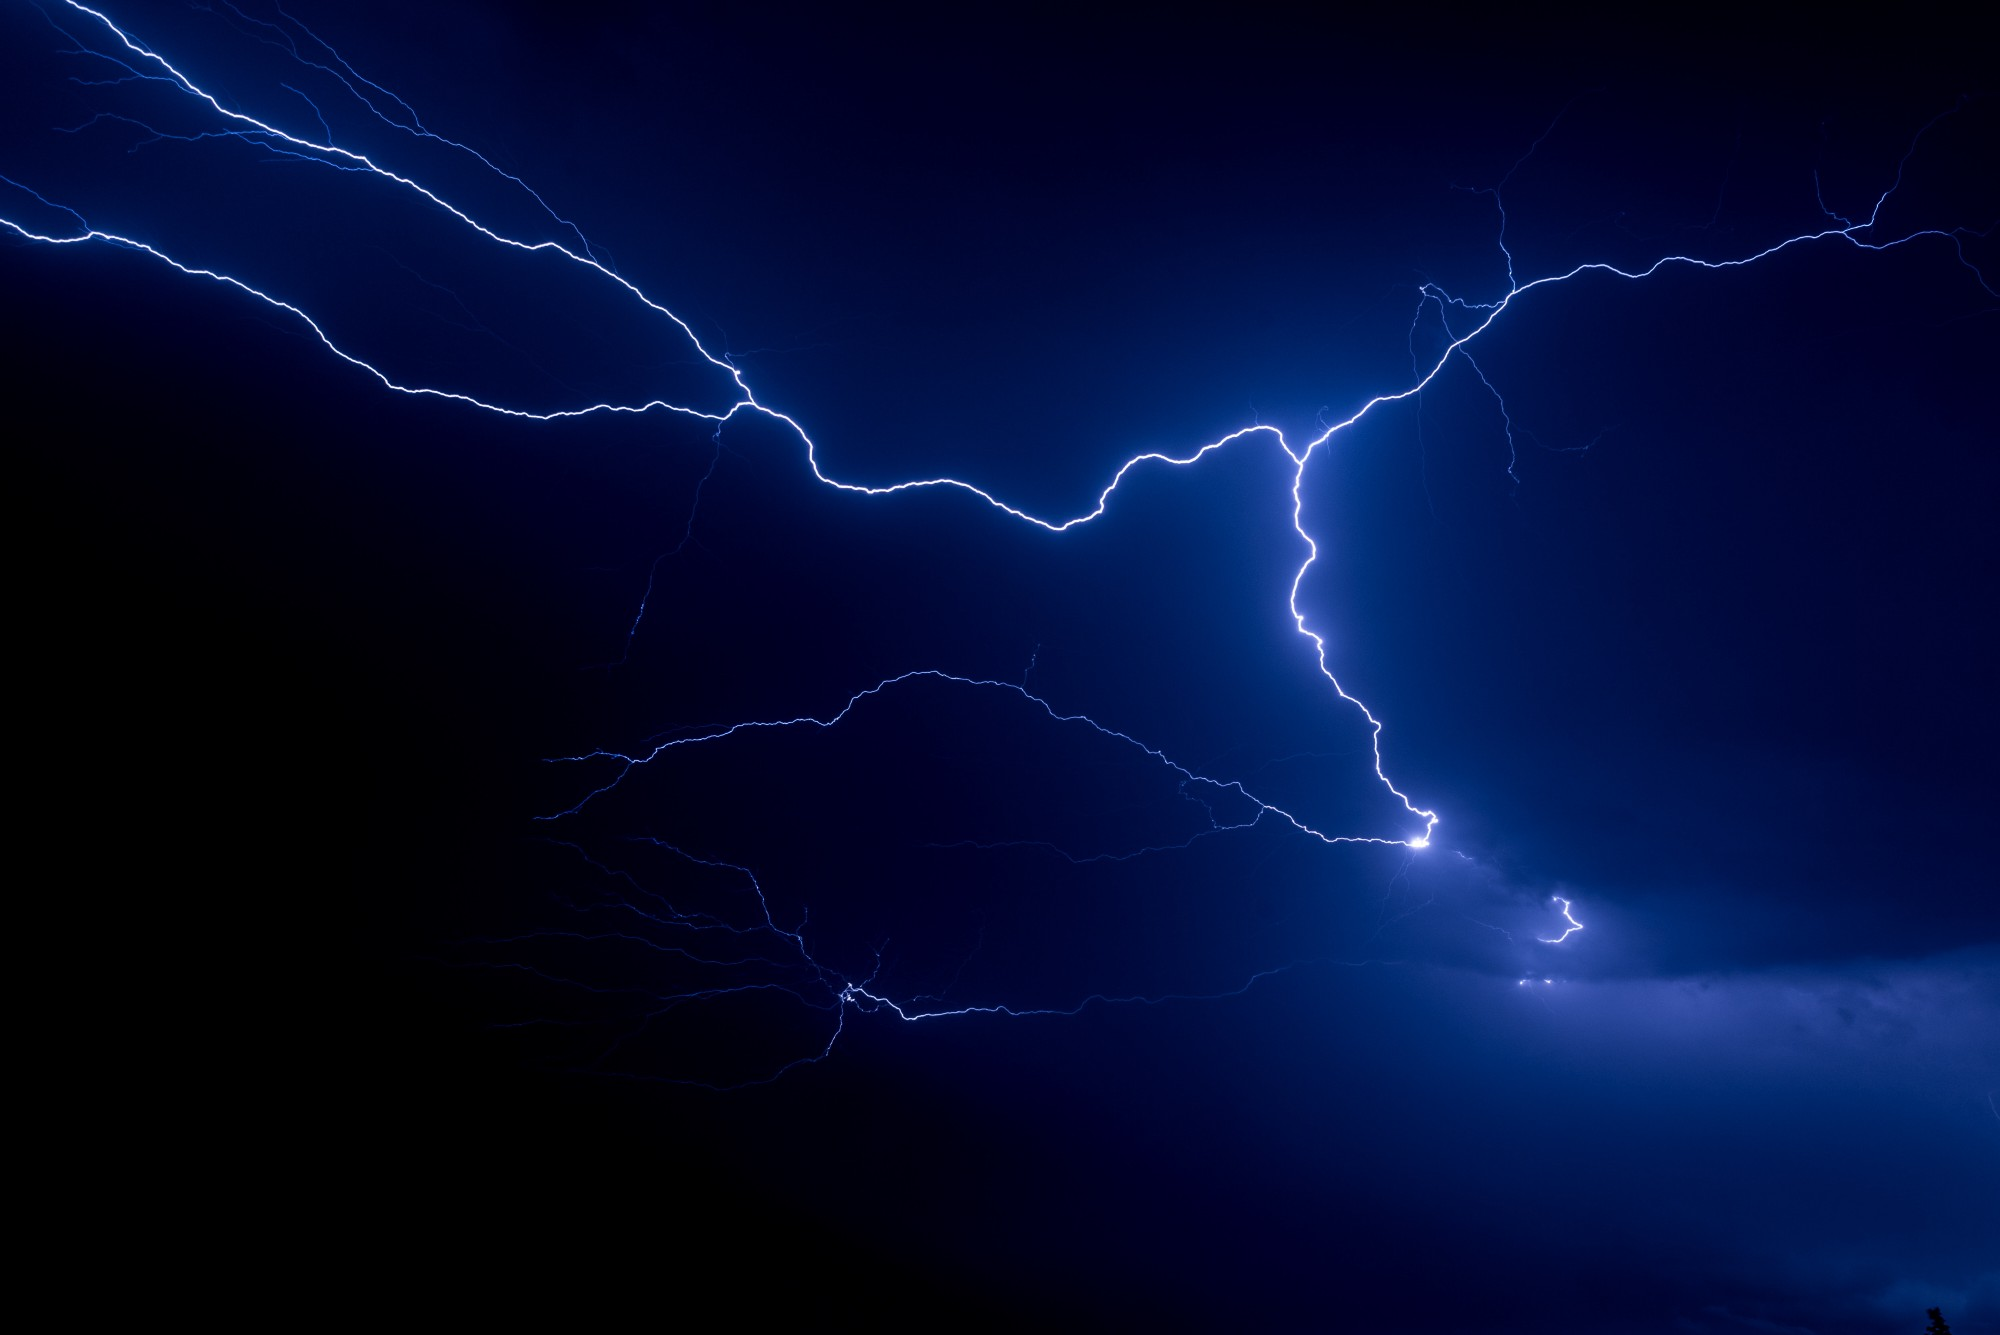 How to experience the Lightning network right now